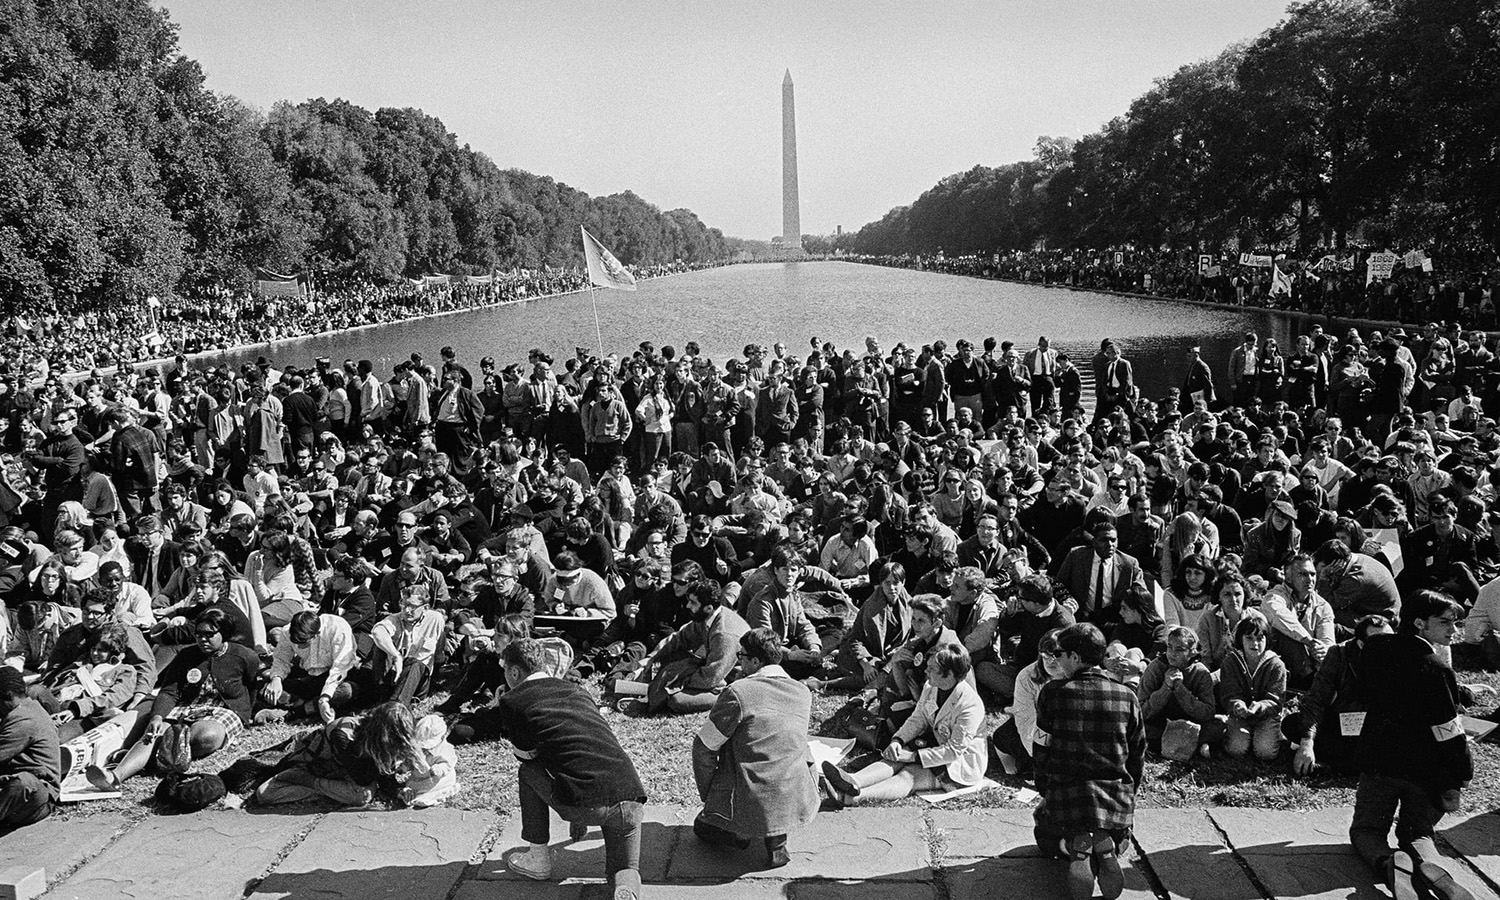 19671021_washington_demonstration.jpg